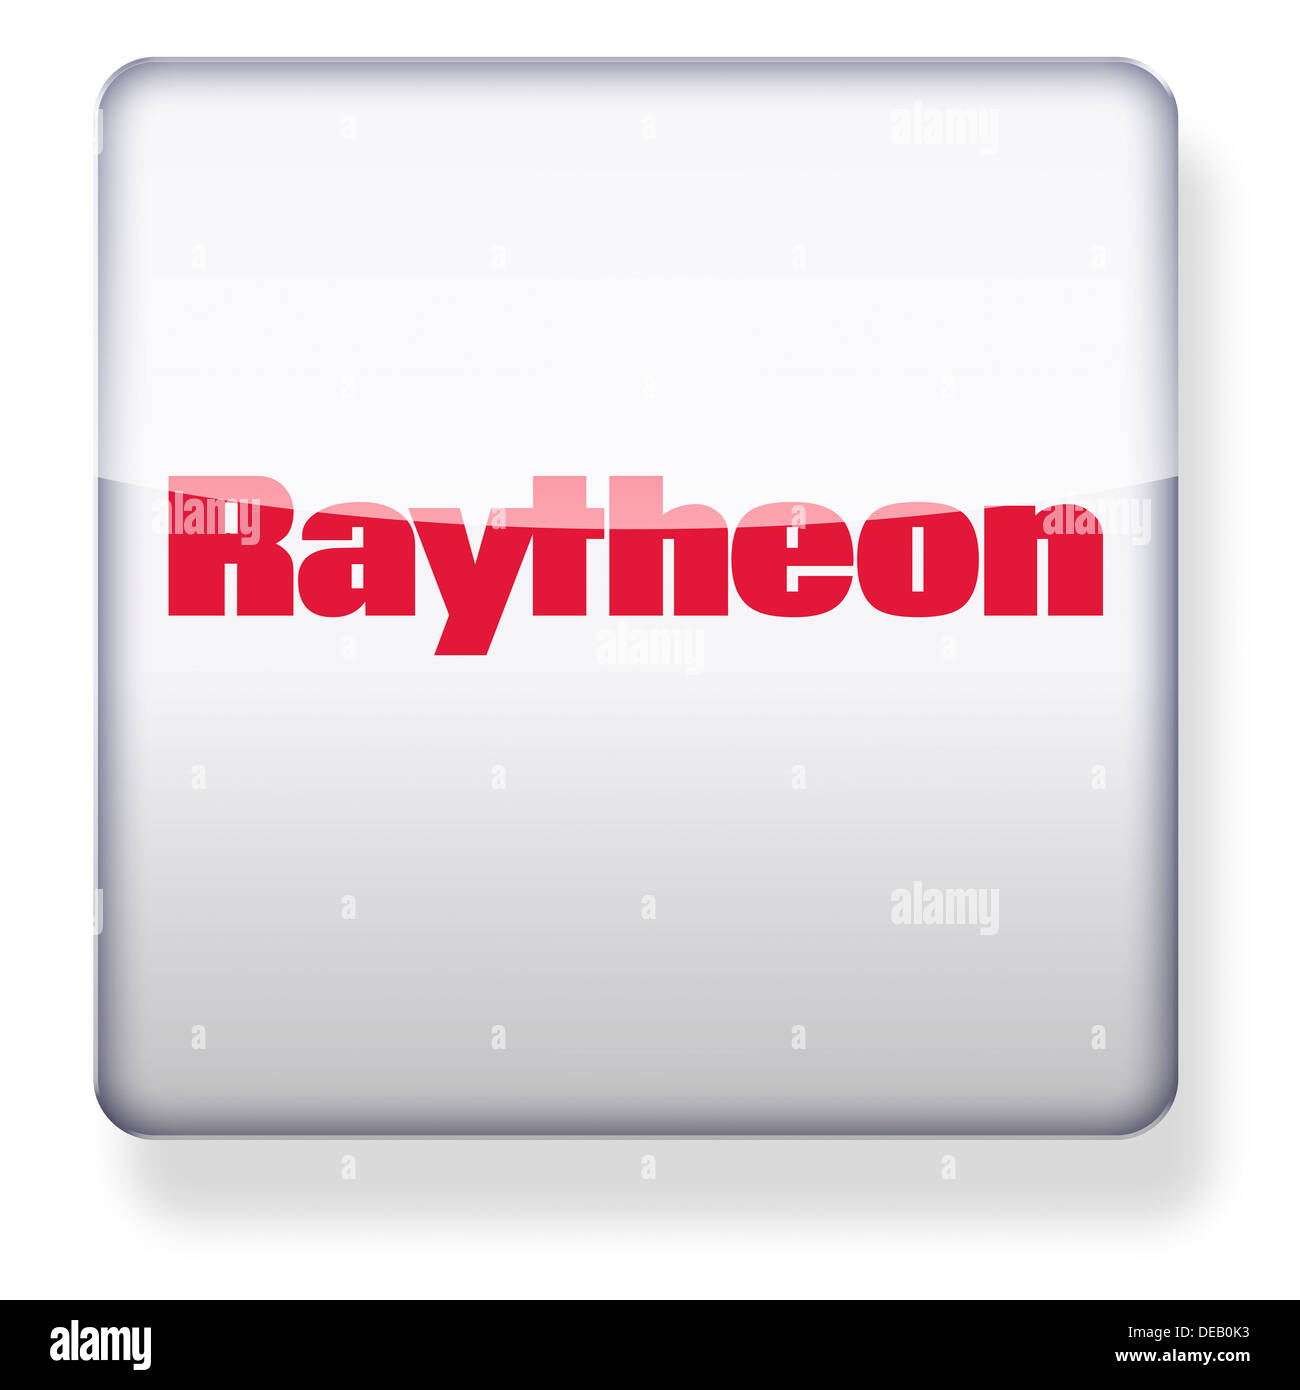 Raytheon logo as an app icon. Clipping path included. - Stock Image